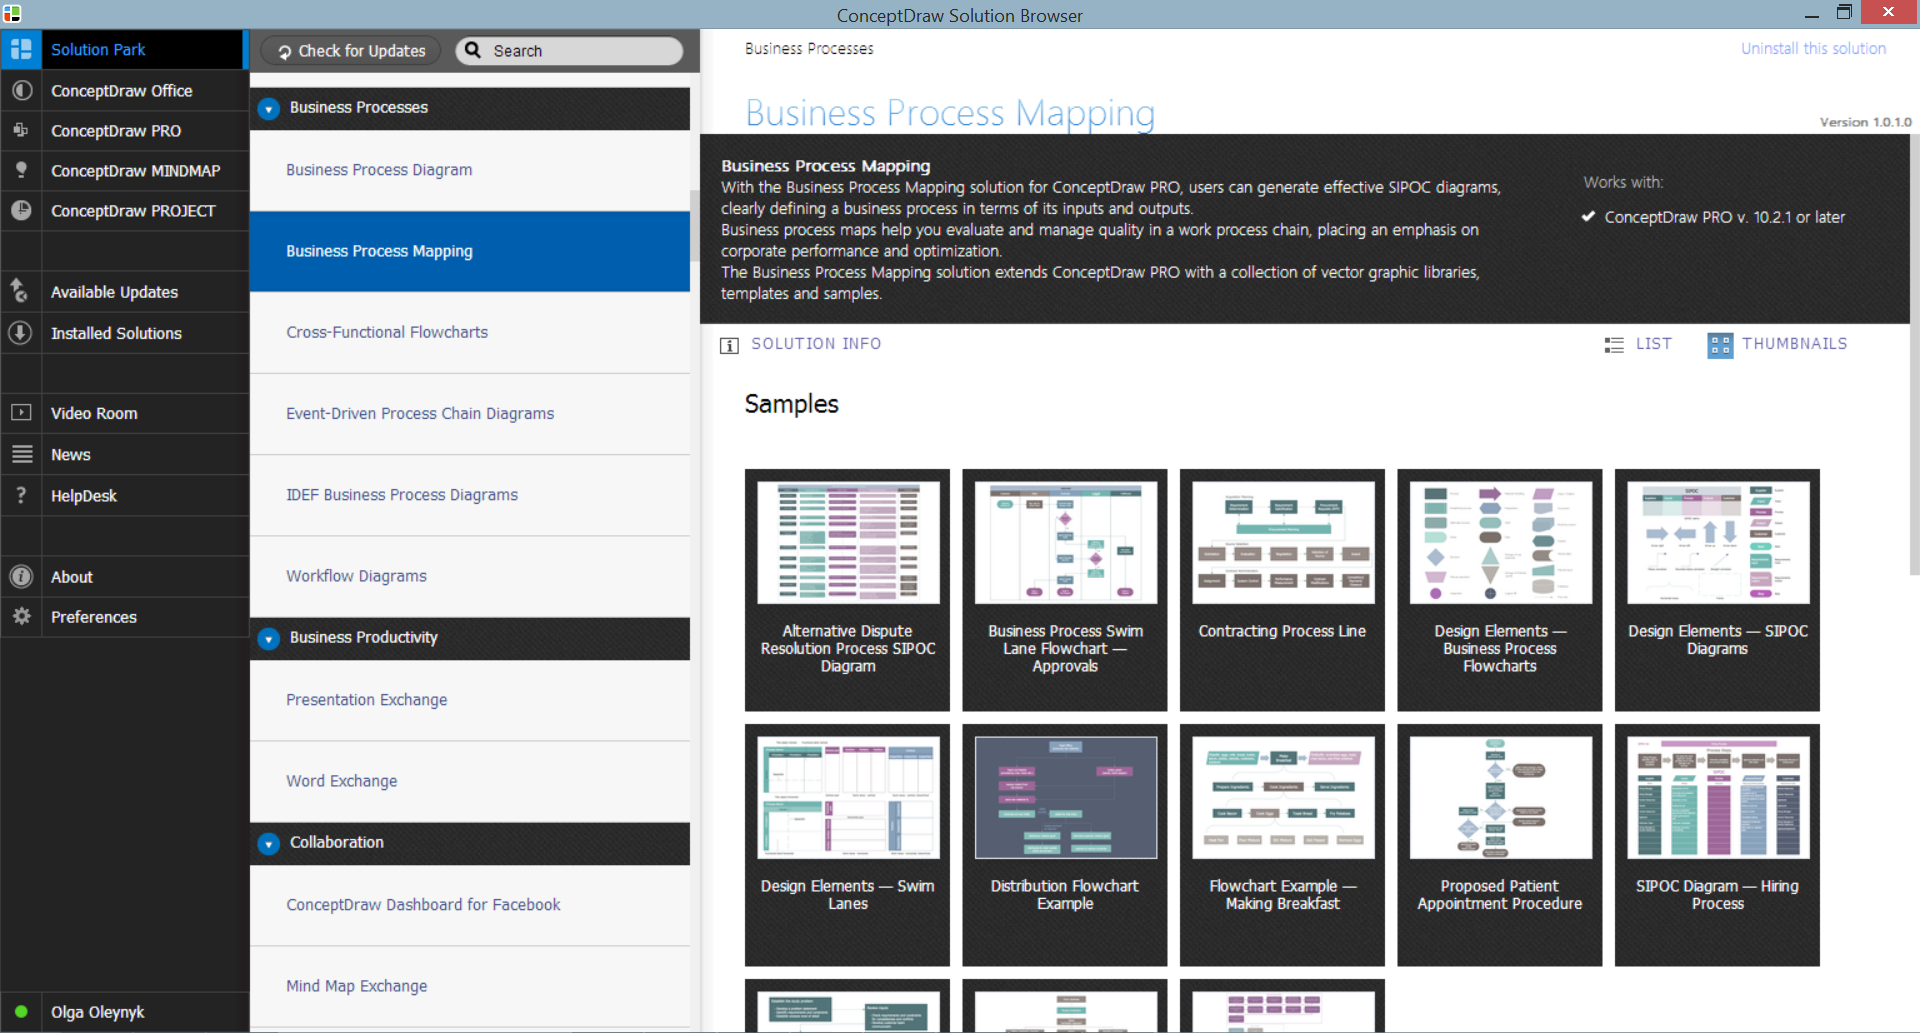 Business Process Mapping Solution in ConceptDraw STORE